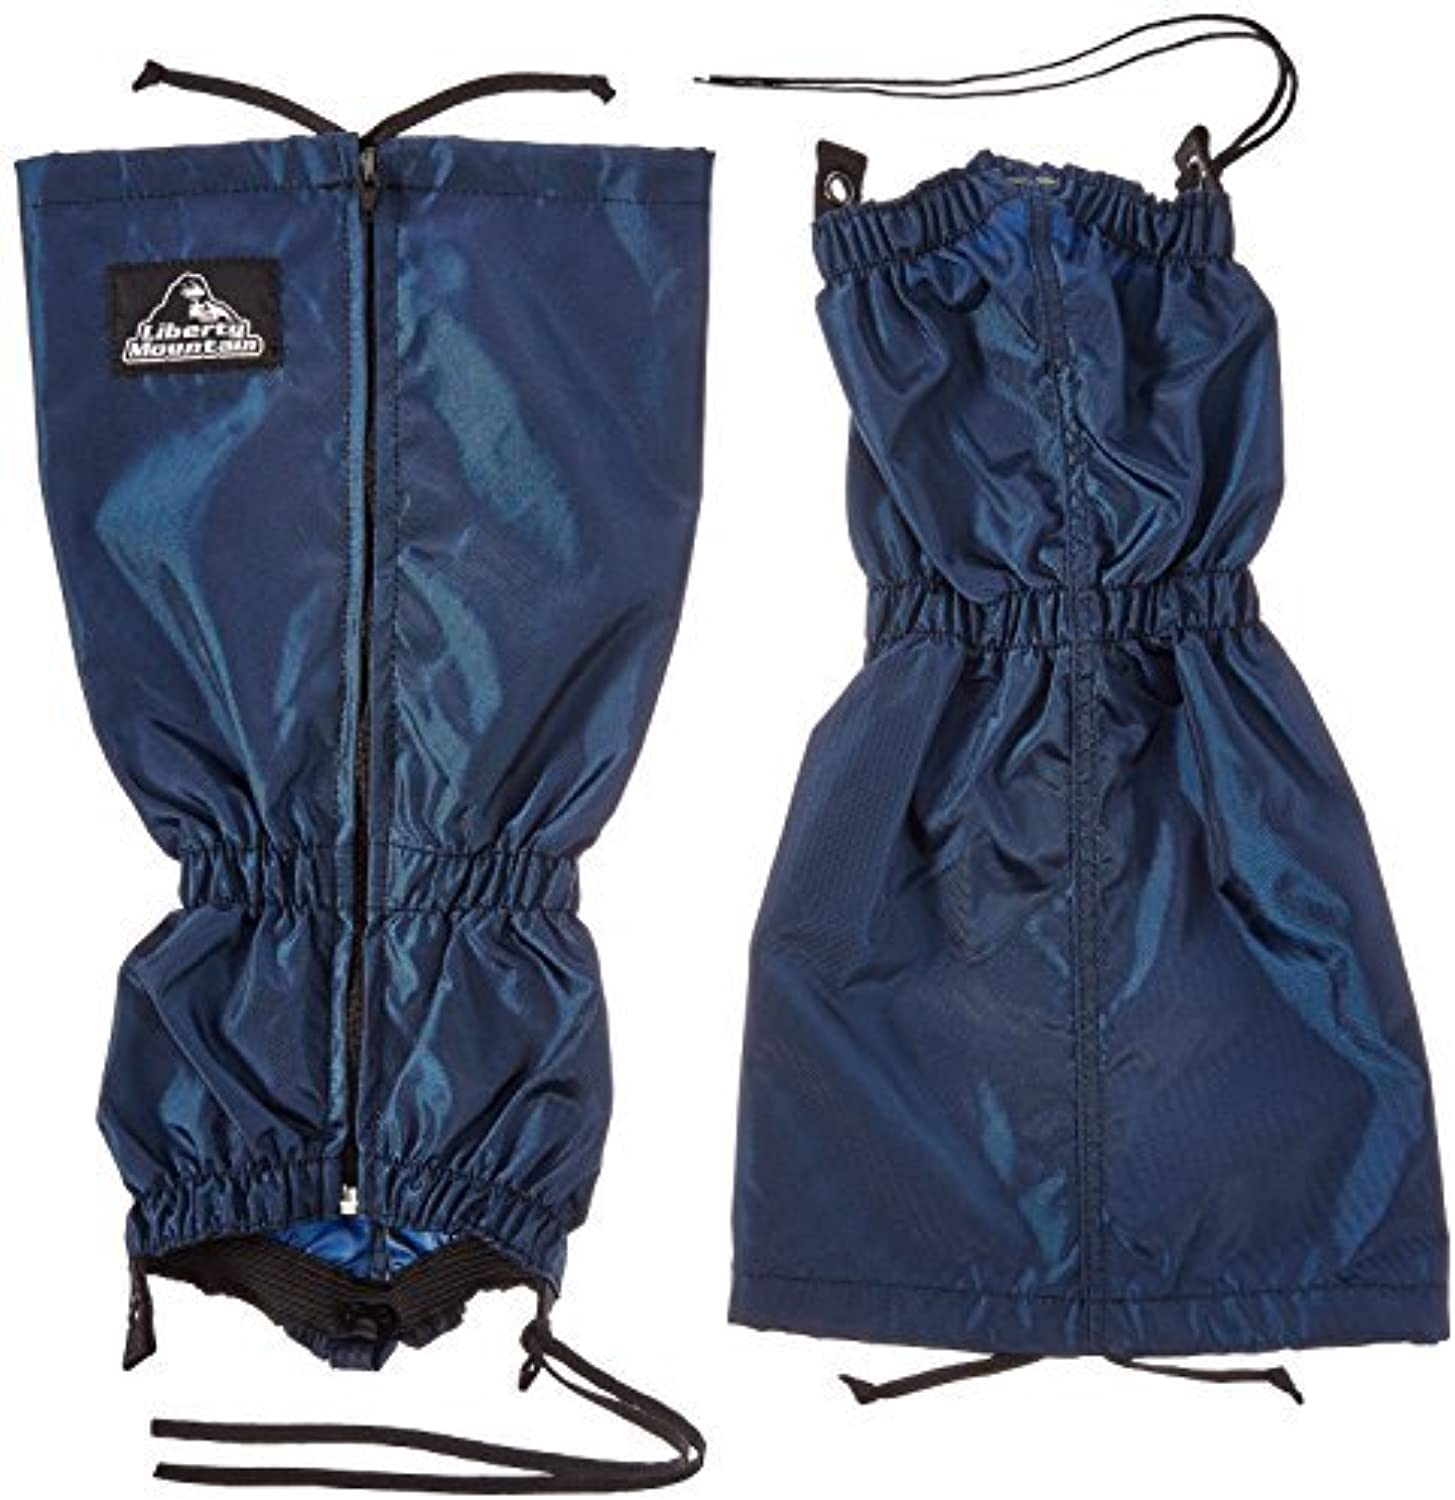 Liberty Mountain Nylon Gaiter (Navy) by Liberty Mountain